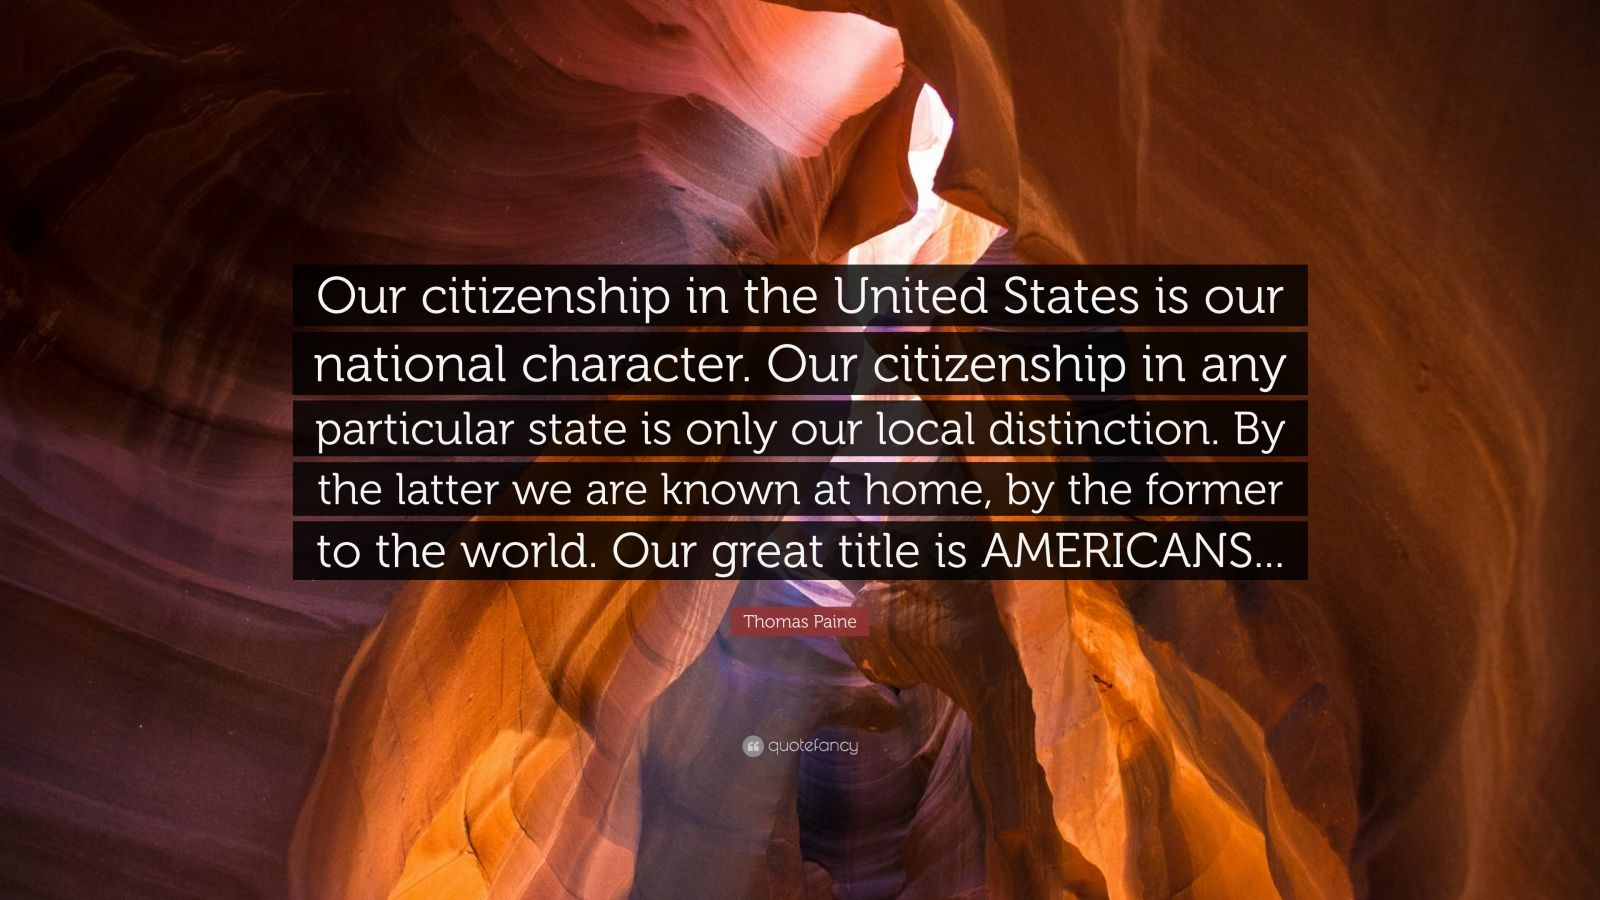 """Thomas Paine Quote: """"Our citizenship in the United States is our national character. Our citizenship in any particular state is only our local distinction. By the latter we are known at home, by the former to the world. Our great title is AMERICANS..."""""""